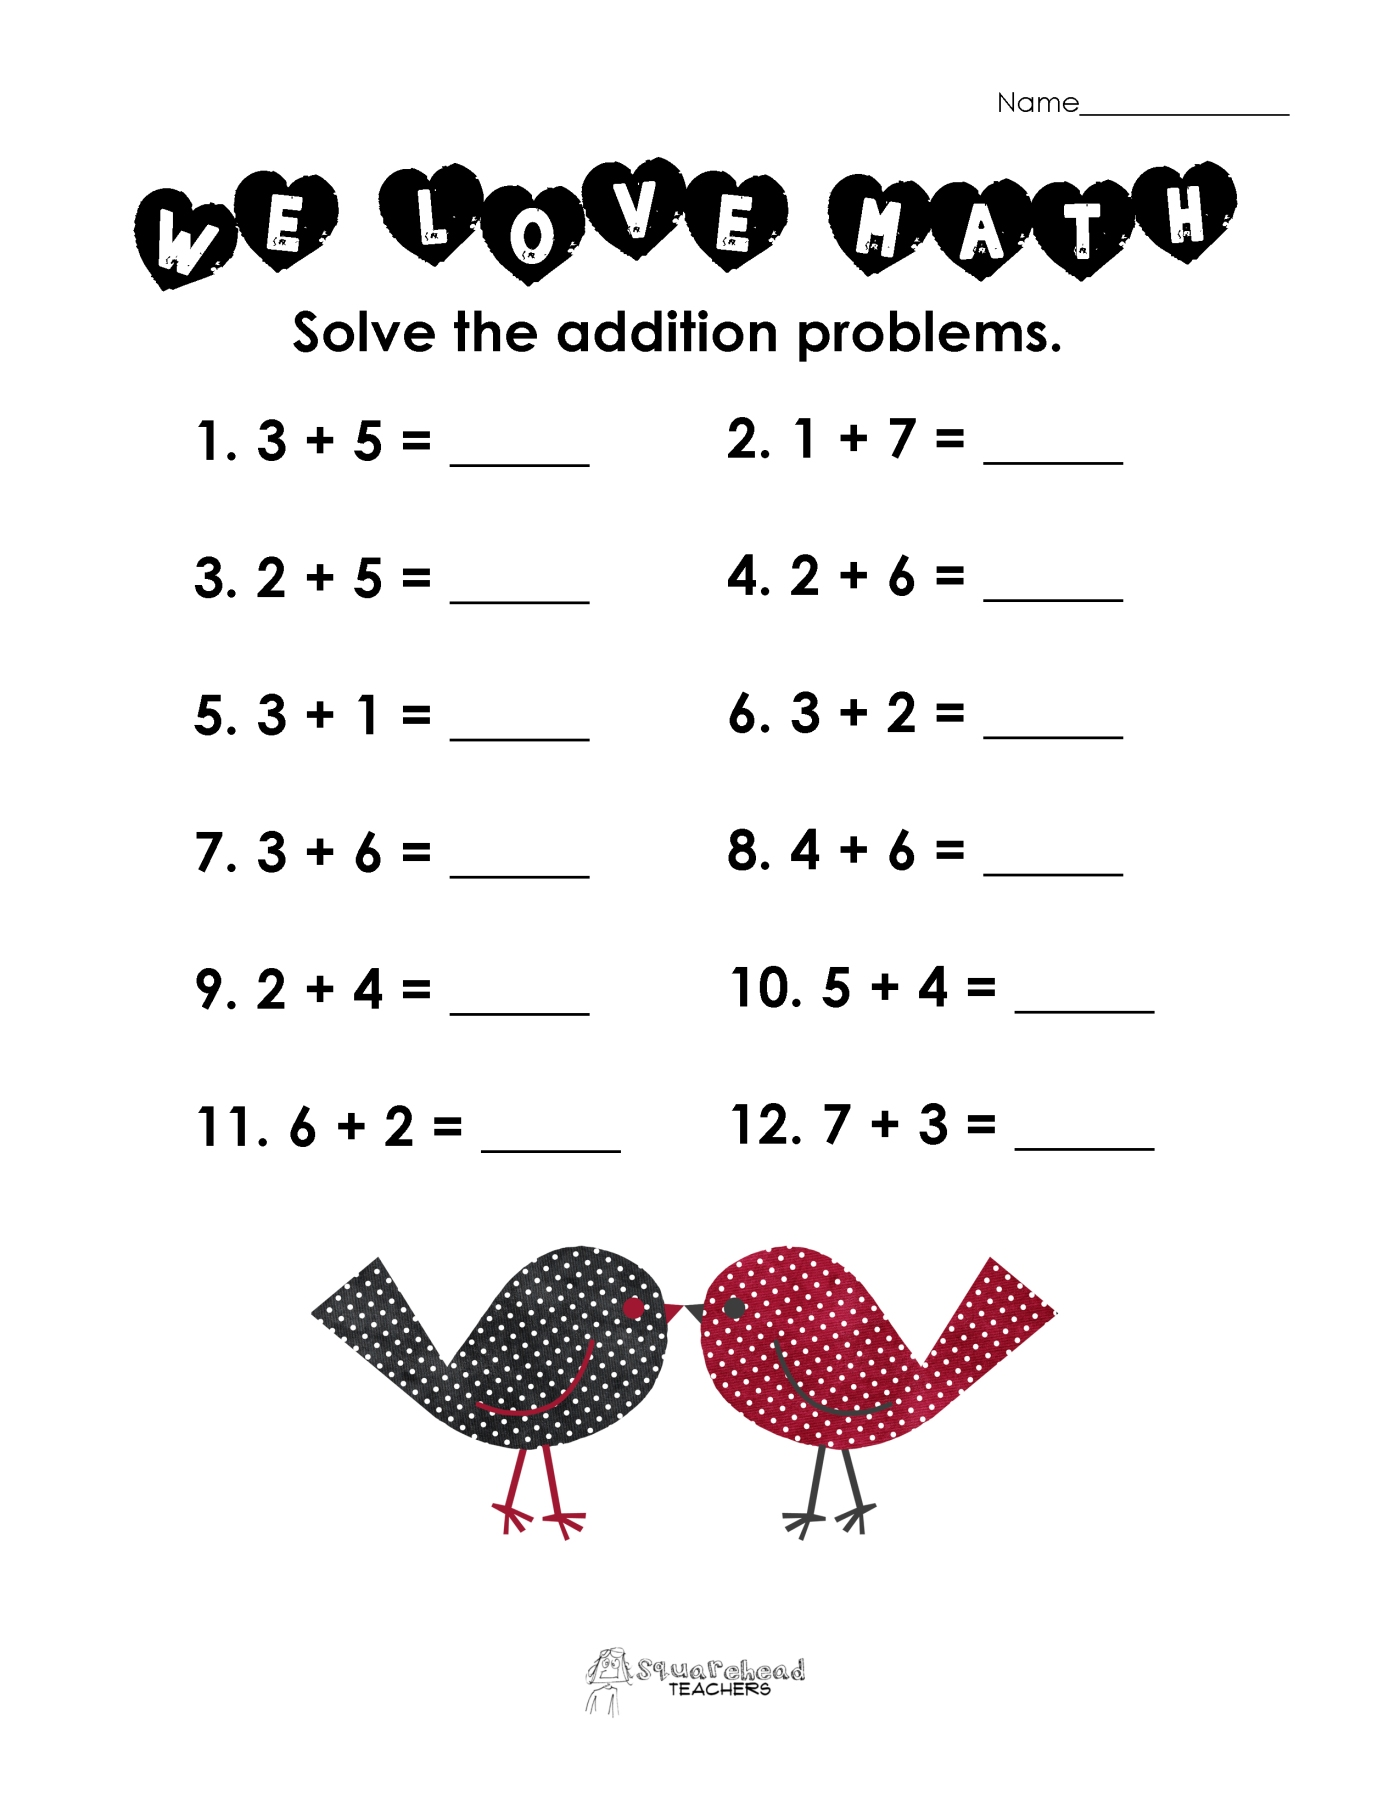 Free Worksheet Basic Math Addition Worksheets valentines day math simple addition worksheet squarehead teachers